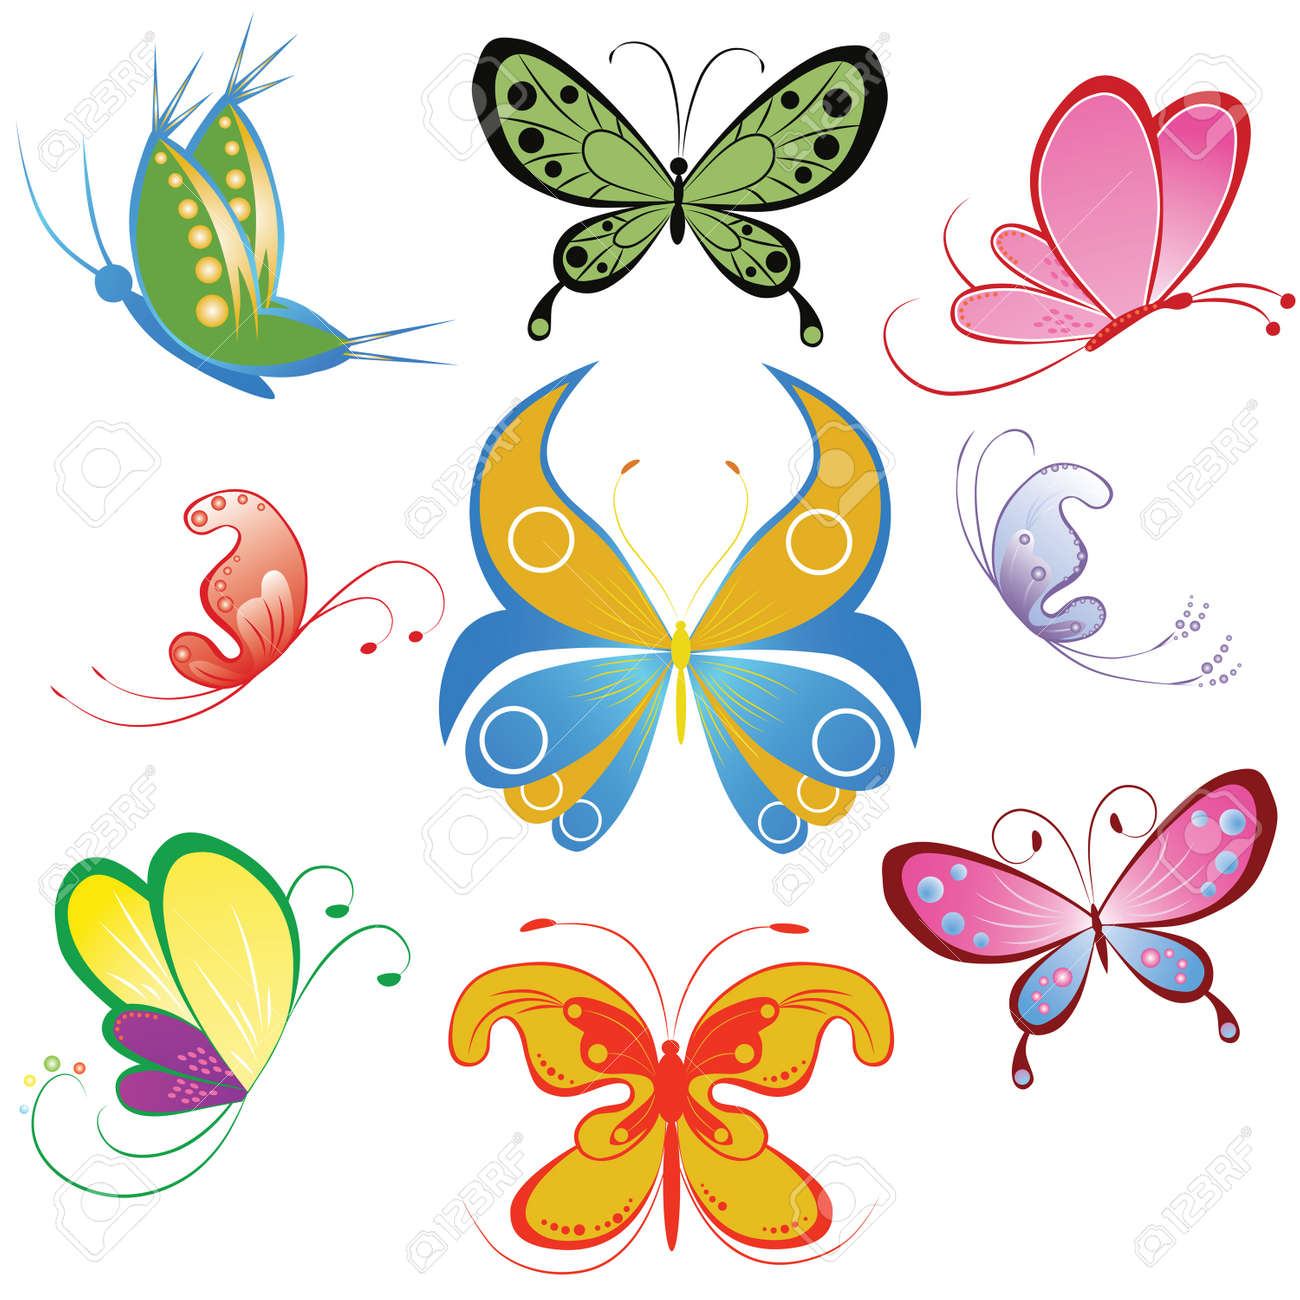 3 790 colored butterfly stock vector illustration and royalty free